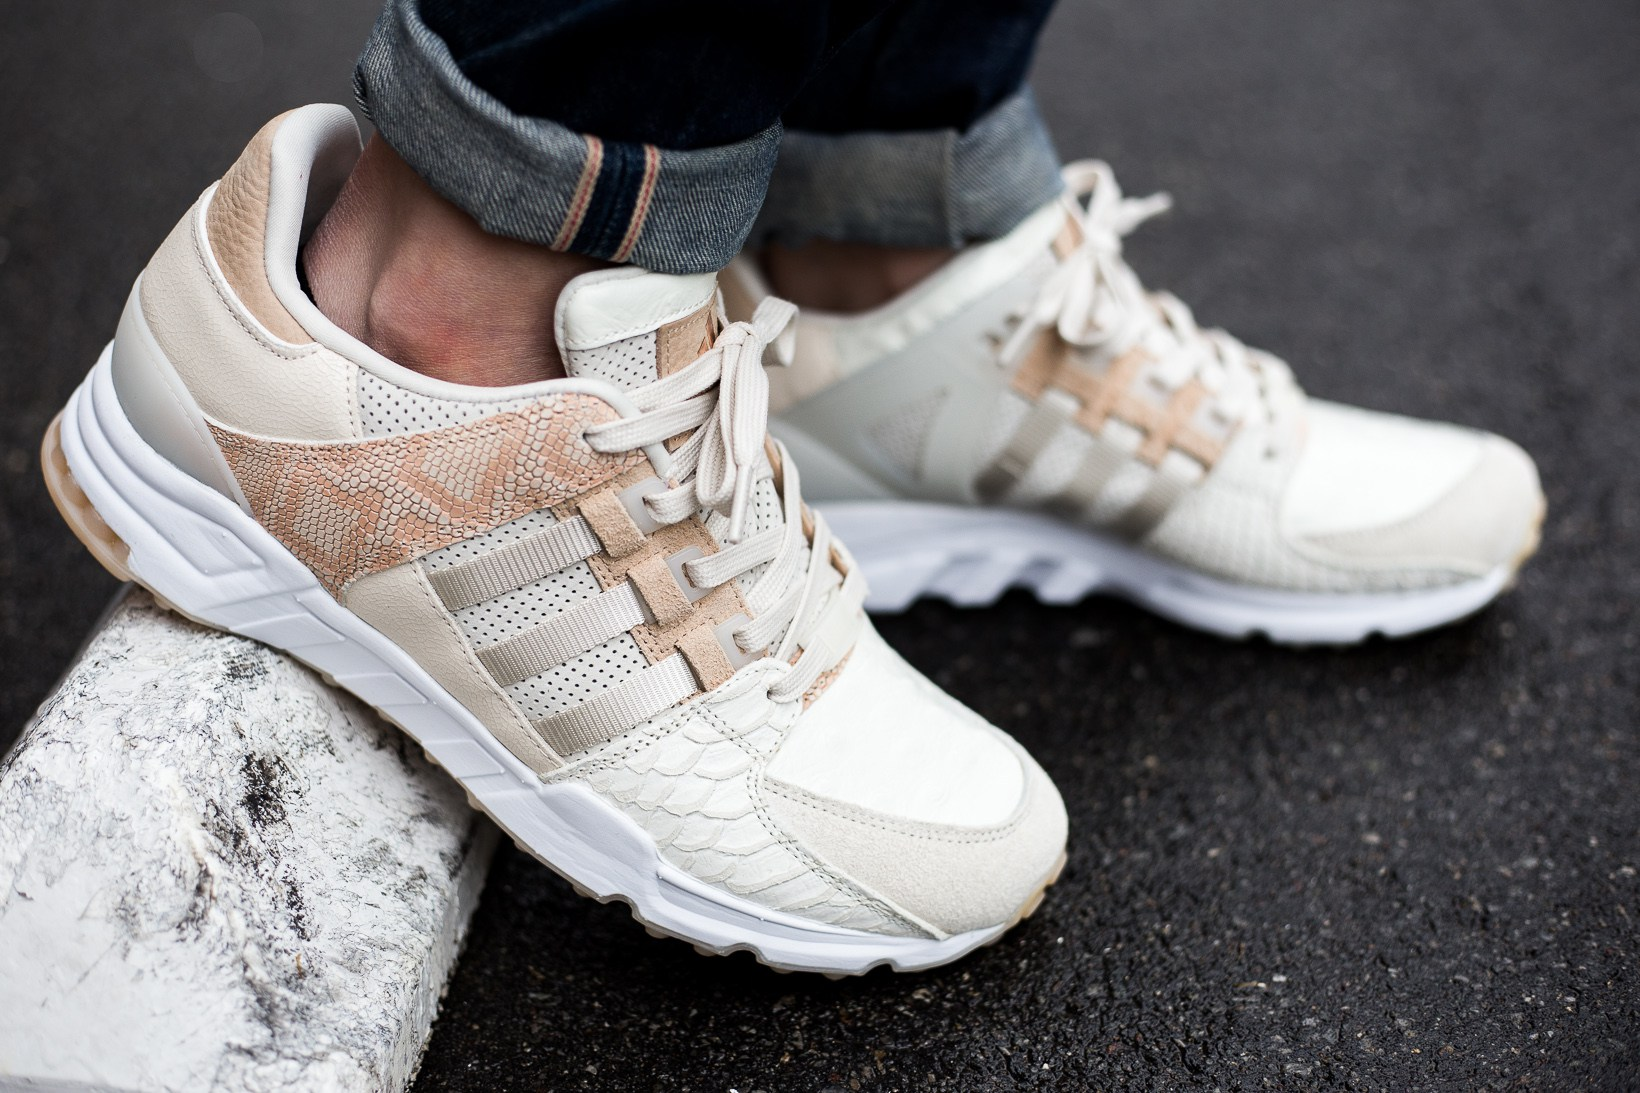 adidas EQT Oddity Luxe Pack